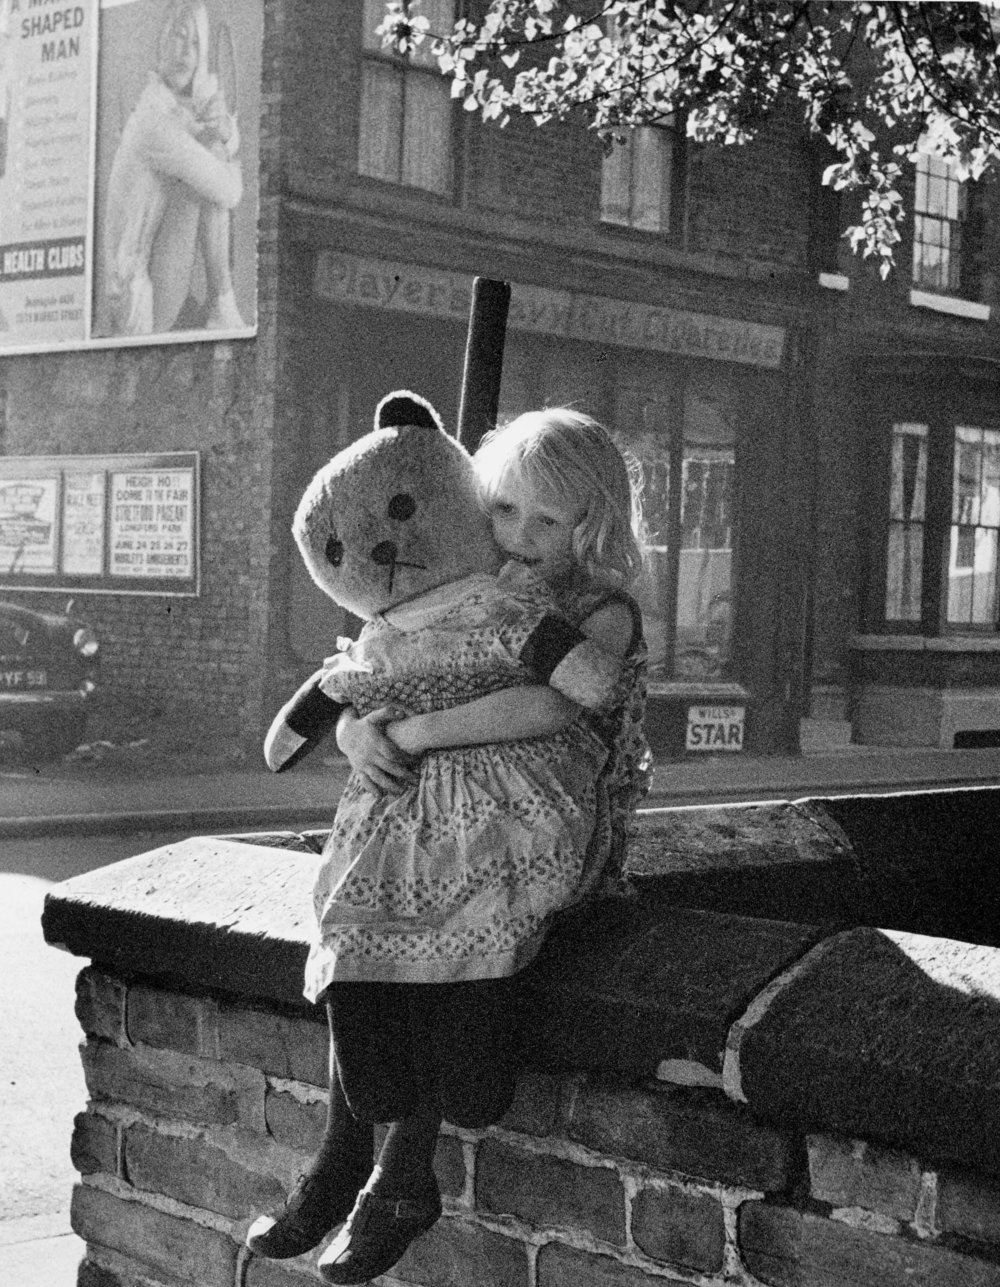 Girl & Teddy, 19-40-12 (1964).jpg